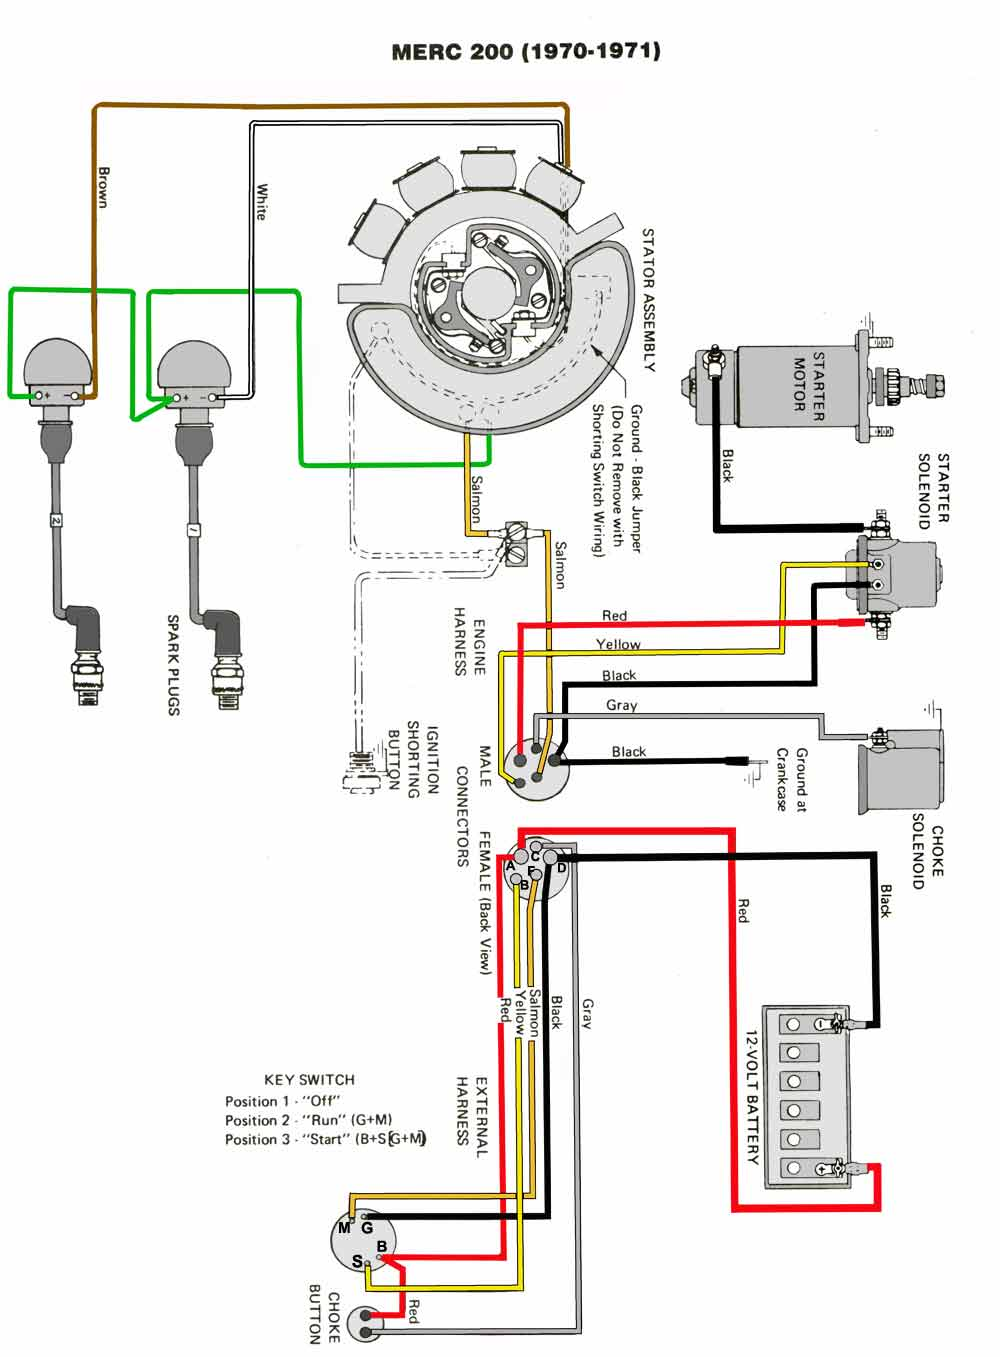 Pleasant Mercury Marine Wiring Harness Diagram General Wiring Diagram Data Wiring 101 Akebretraxxcnl